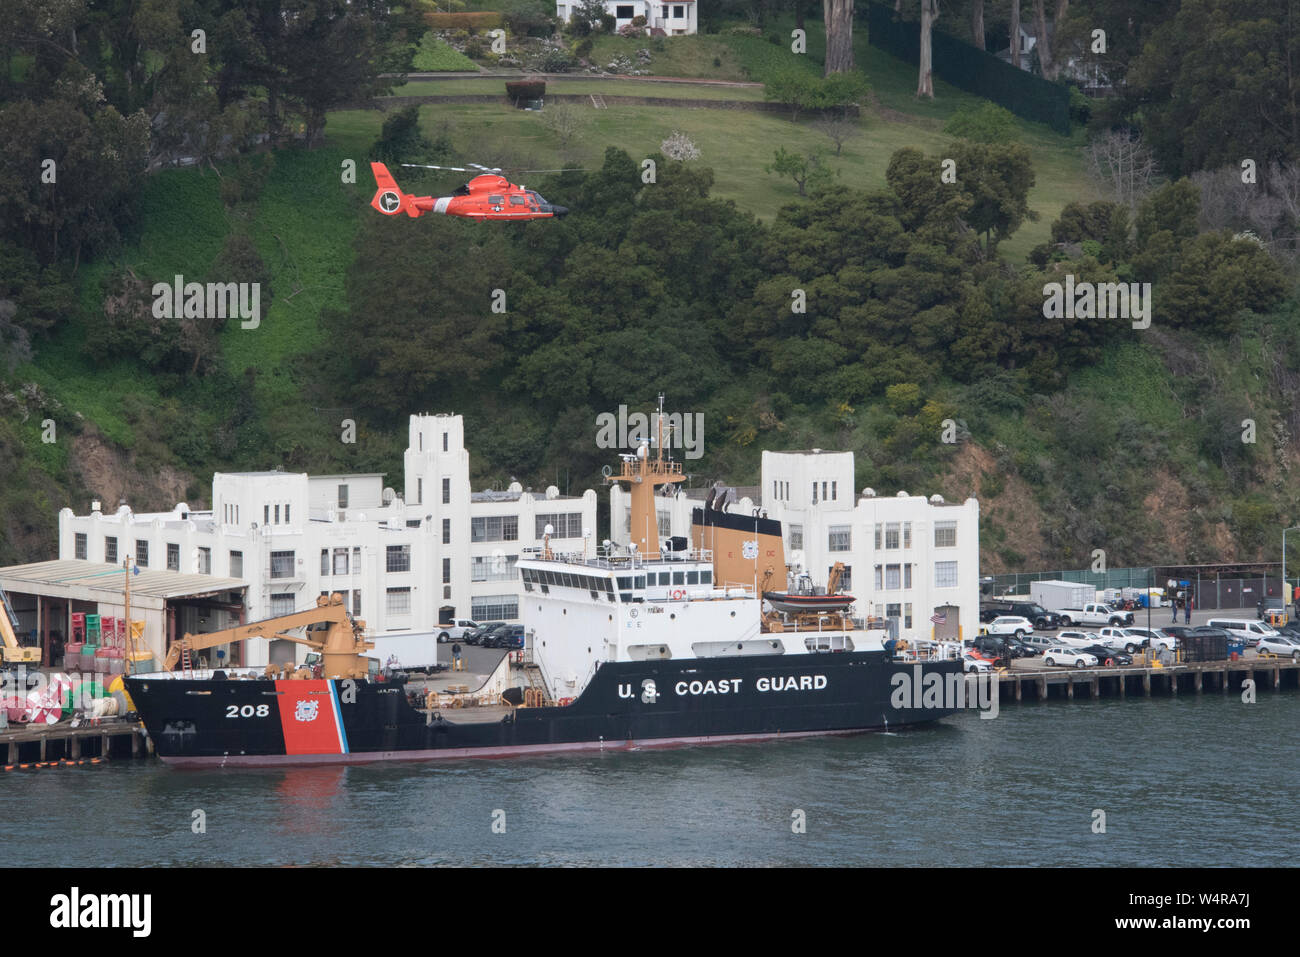 A Coast Guard Air Station San Francisco MH-65 Dolphin helicopter flies over the Coast Guard Cutter Aspen and Coast Guard Sector San Francisco during a formation flight, April 15, 2019. Air Station San Francisco's primary missions include search and rescue, port, waterways, and coastal security, protecting living marine resources, enforcing federal and international laws and regulations and providing logistical support to other Coast Guard units. (U.S. Coast Guard photo by Petty Officer 2nd Class Jordan Akiyama.) Stock Photo